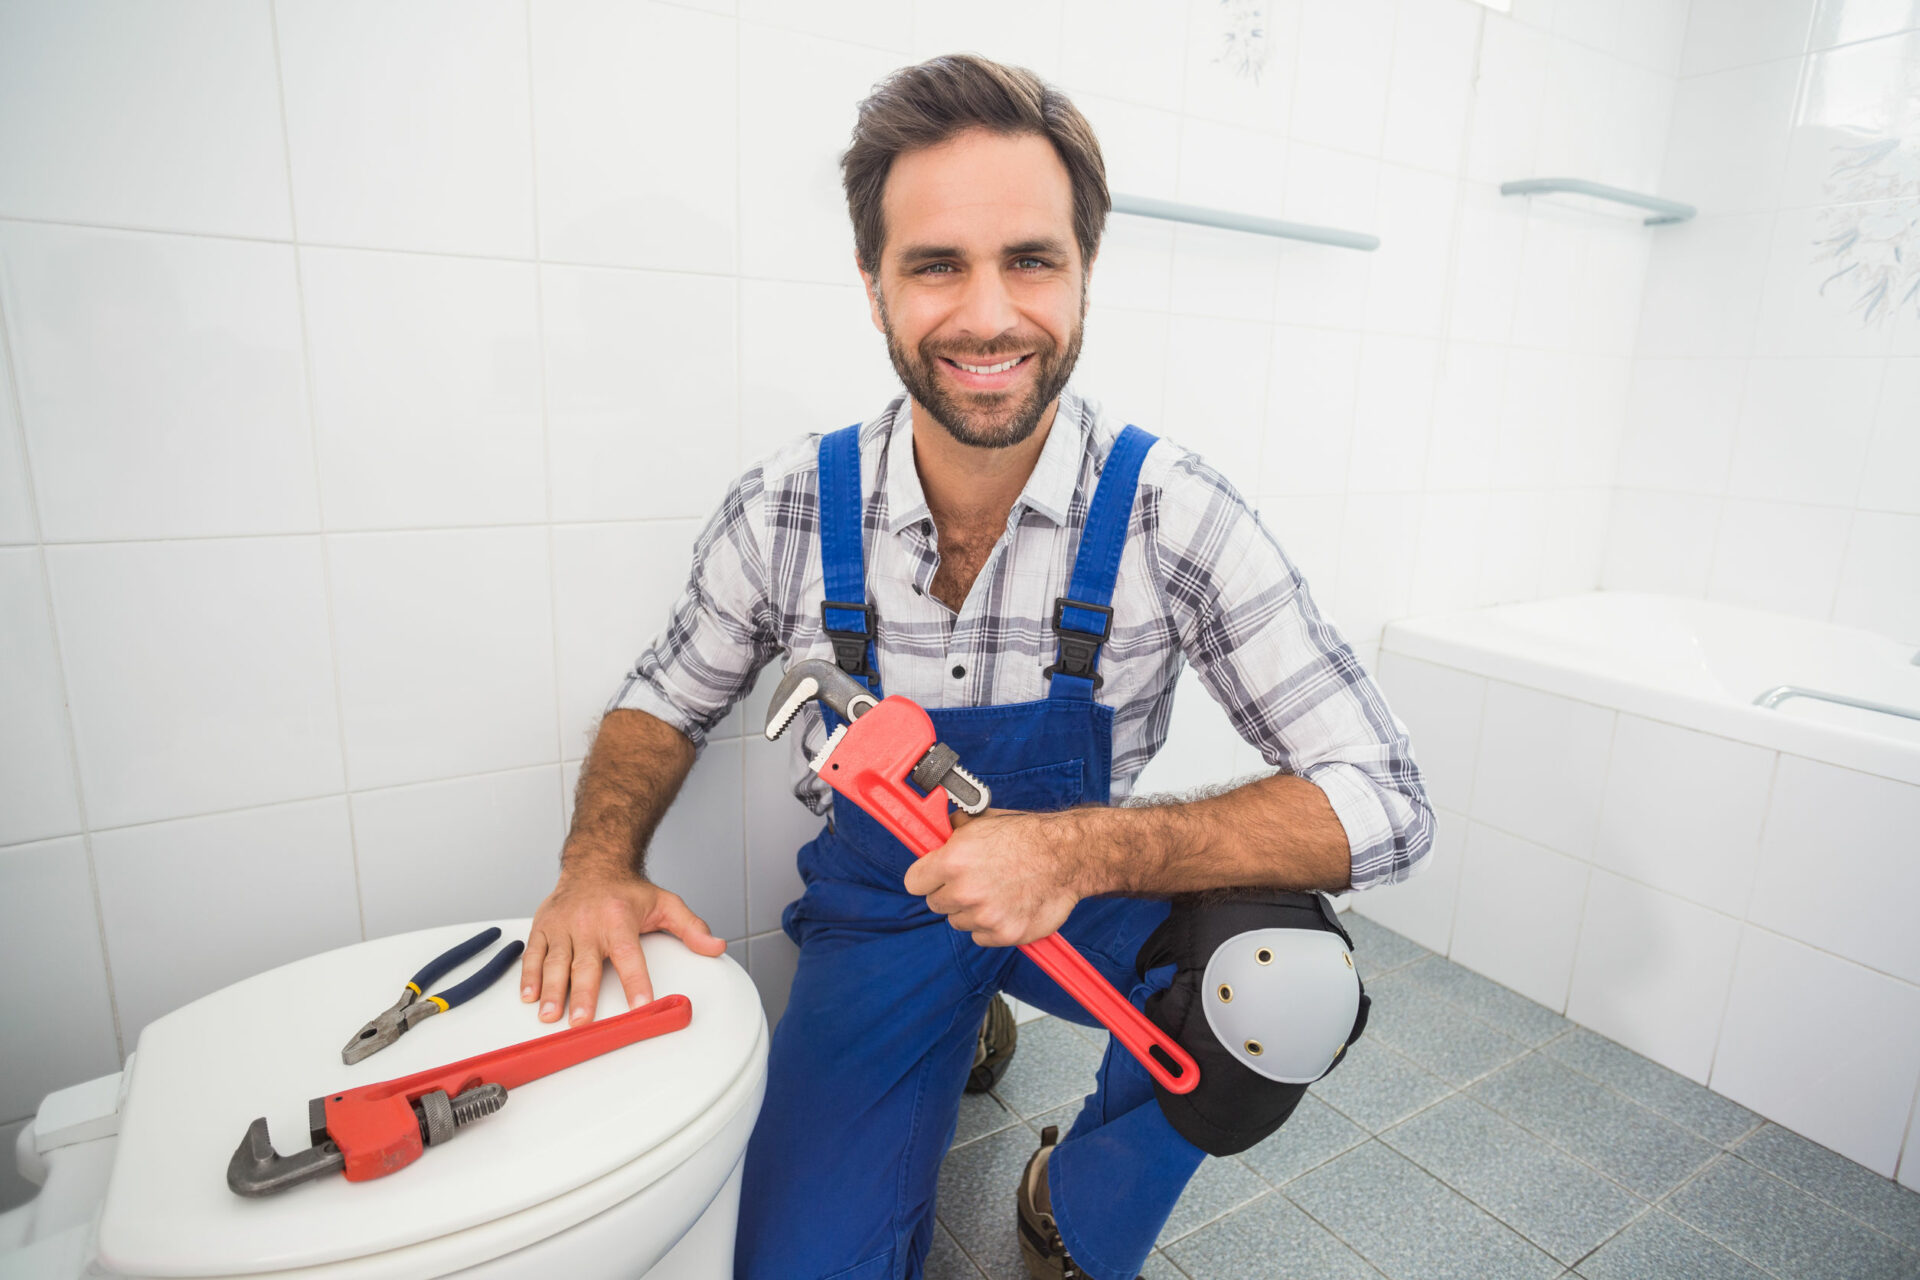 5 Questions to Ask When Choosing Your HVAC or Plumbing Contractor